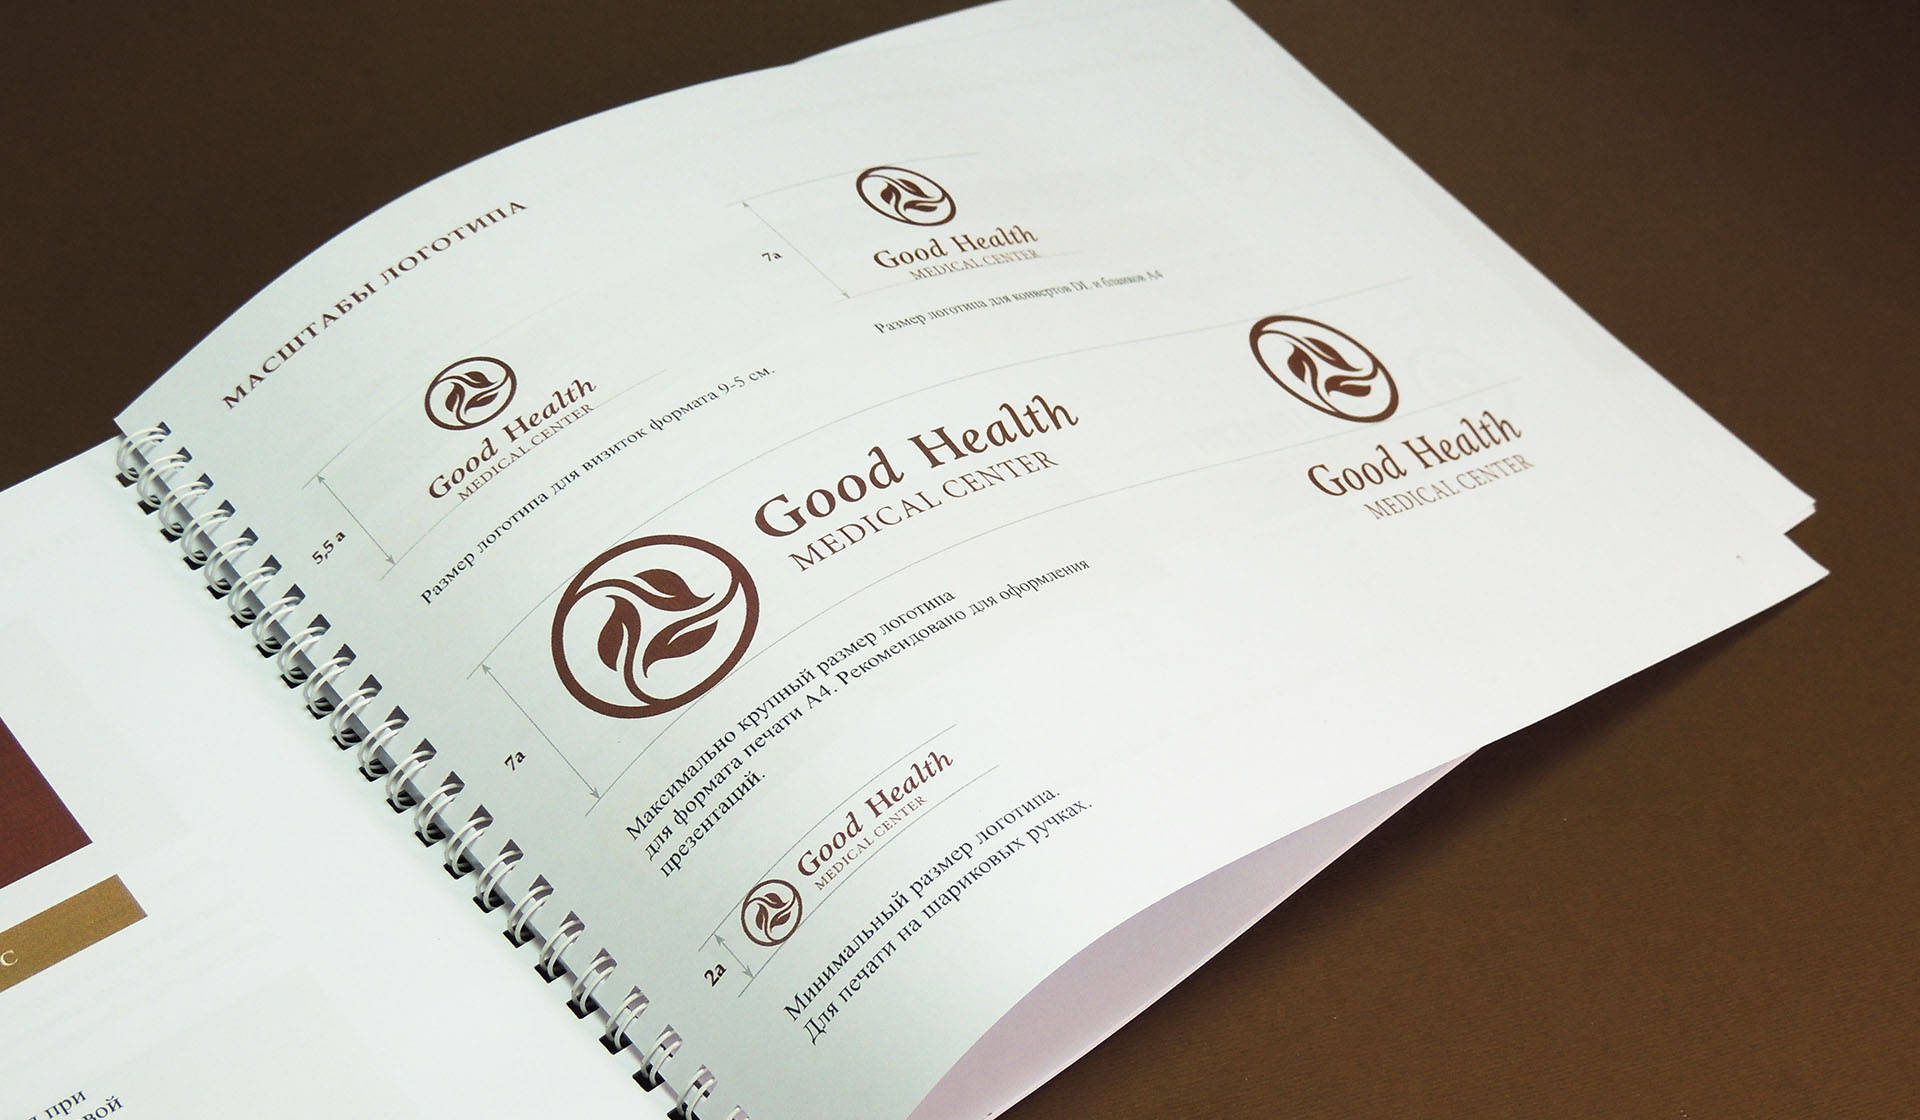 brand book of the medical clinic